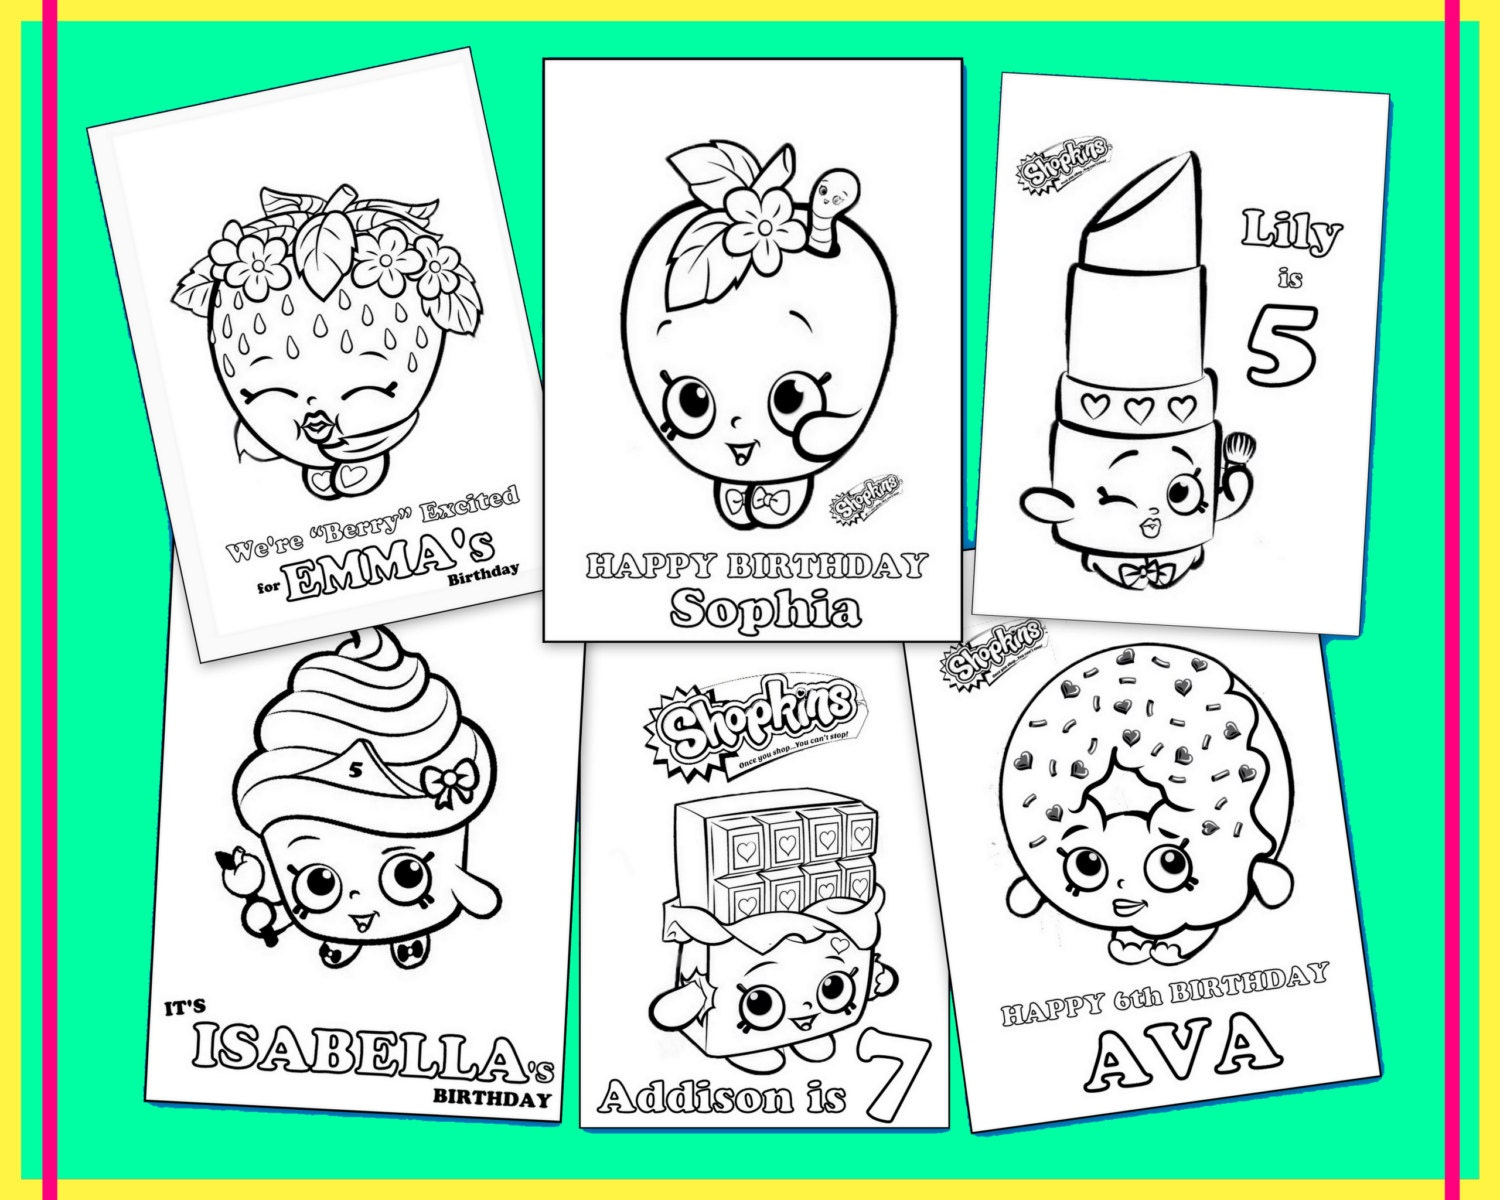 Beautiful Christmas Coloring Book Huge Frozen Coloring Books Flat Gangsta Rap Coloring Book Owl Coloring Book Young Horse Coloring Book RedAnime Coloring Books Shopkins Personalized Coloring Book For Party Favors Or